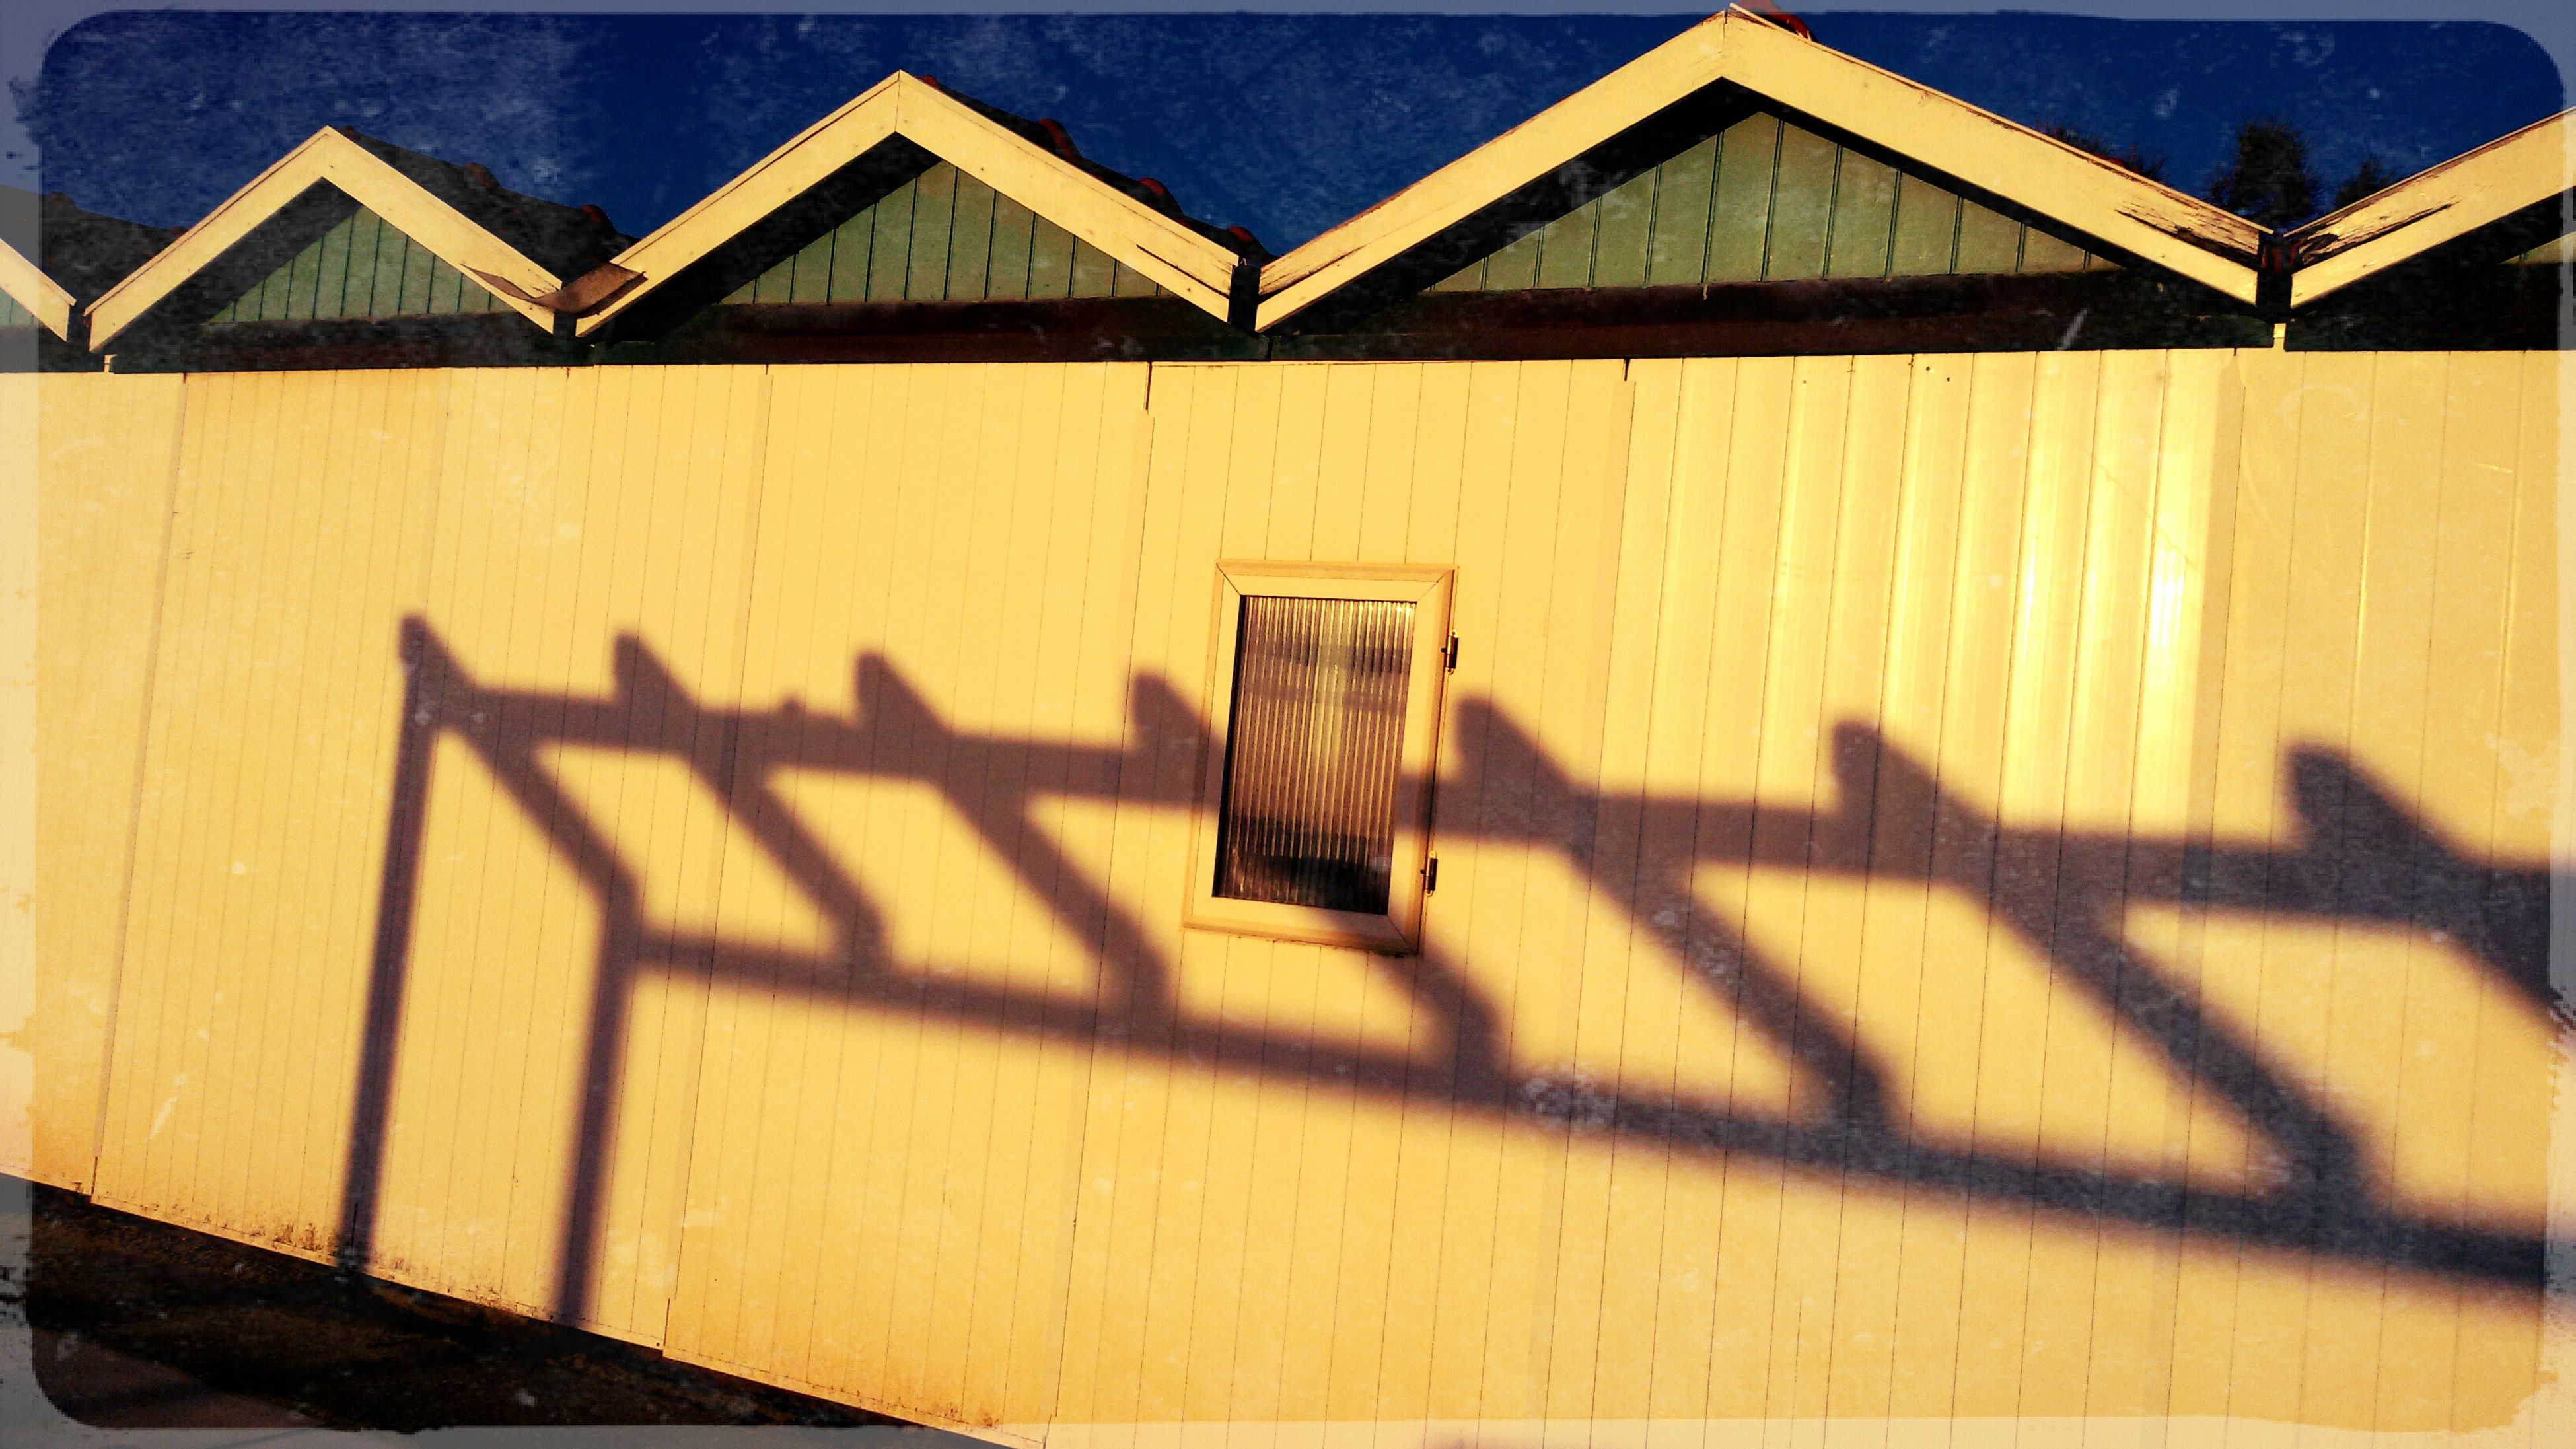 shadow, built structure, architecture, building exterior, sunlight, transfer print, auto post production filter, steps, railing, wood - material, empty, high angle view, bench, day, house, absence, no people, outdoors, staircase, chair